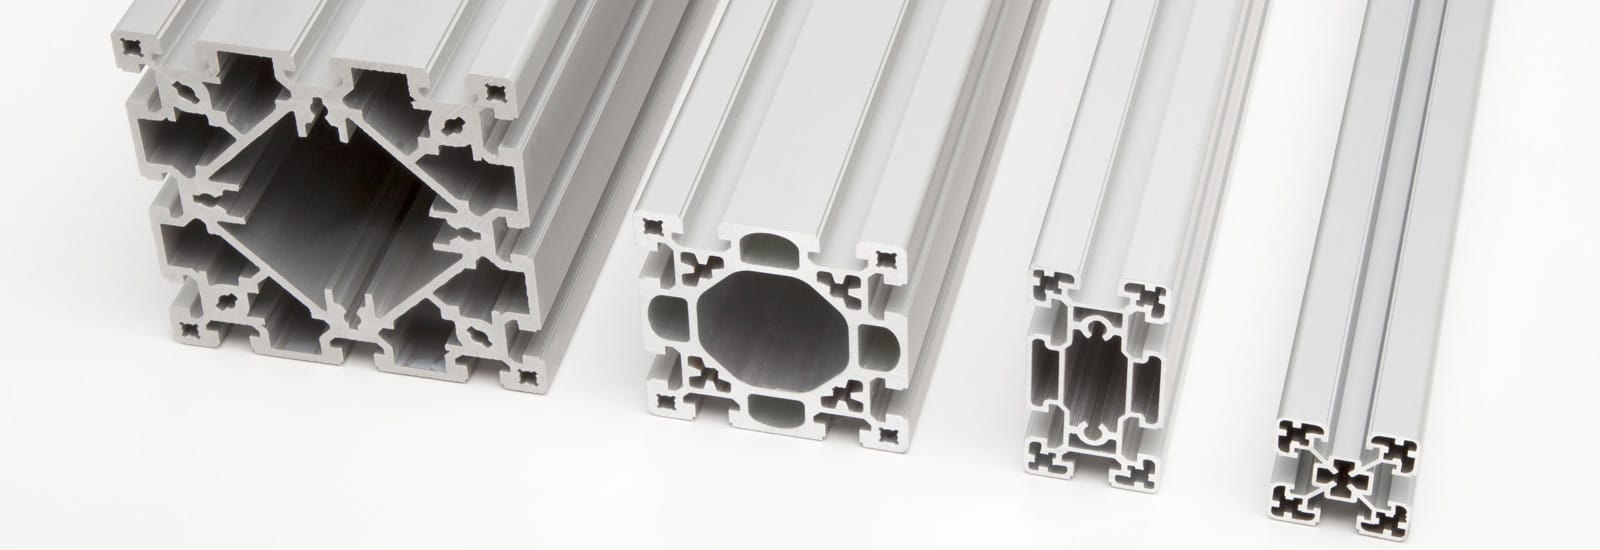 Aluminium construction profiles